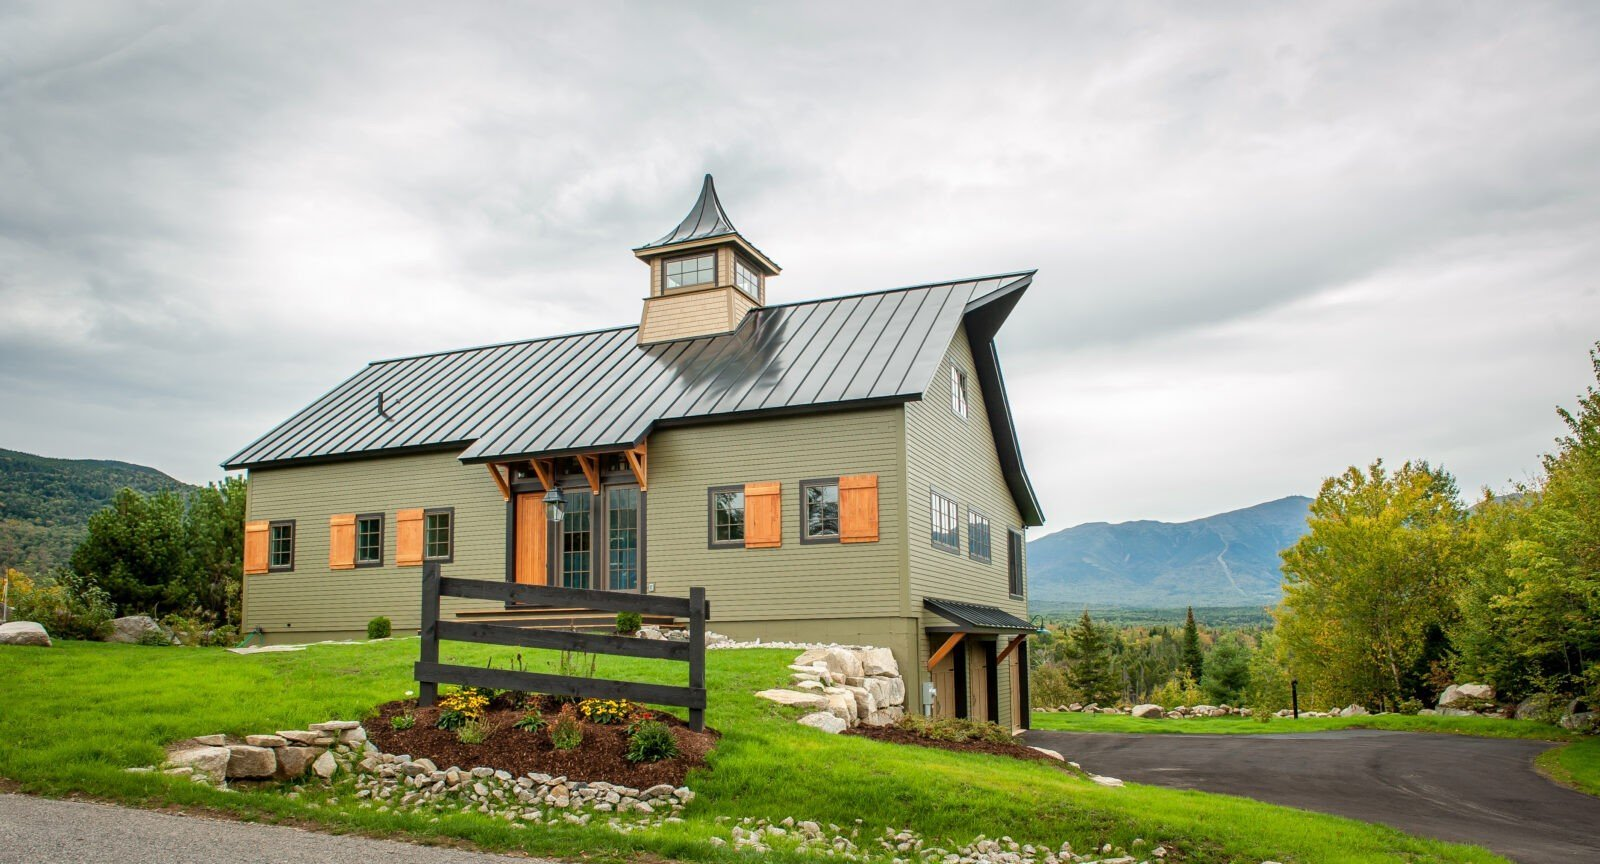 Top notch barn home plans from the ybh design team for Barn house layouts